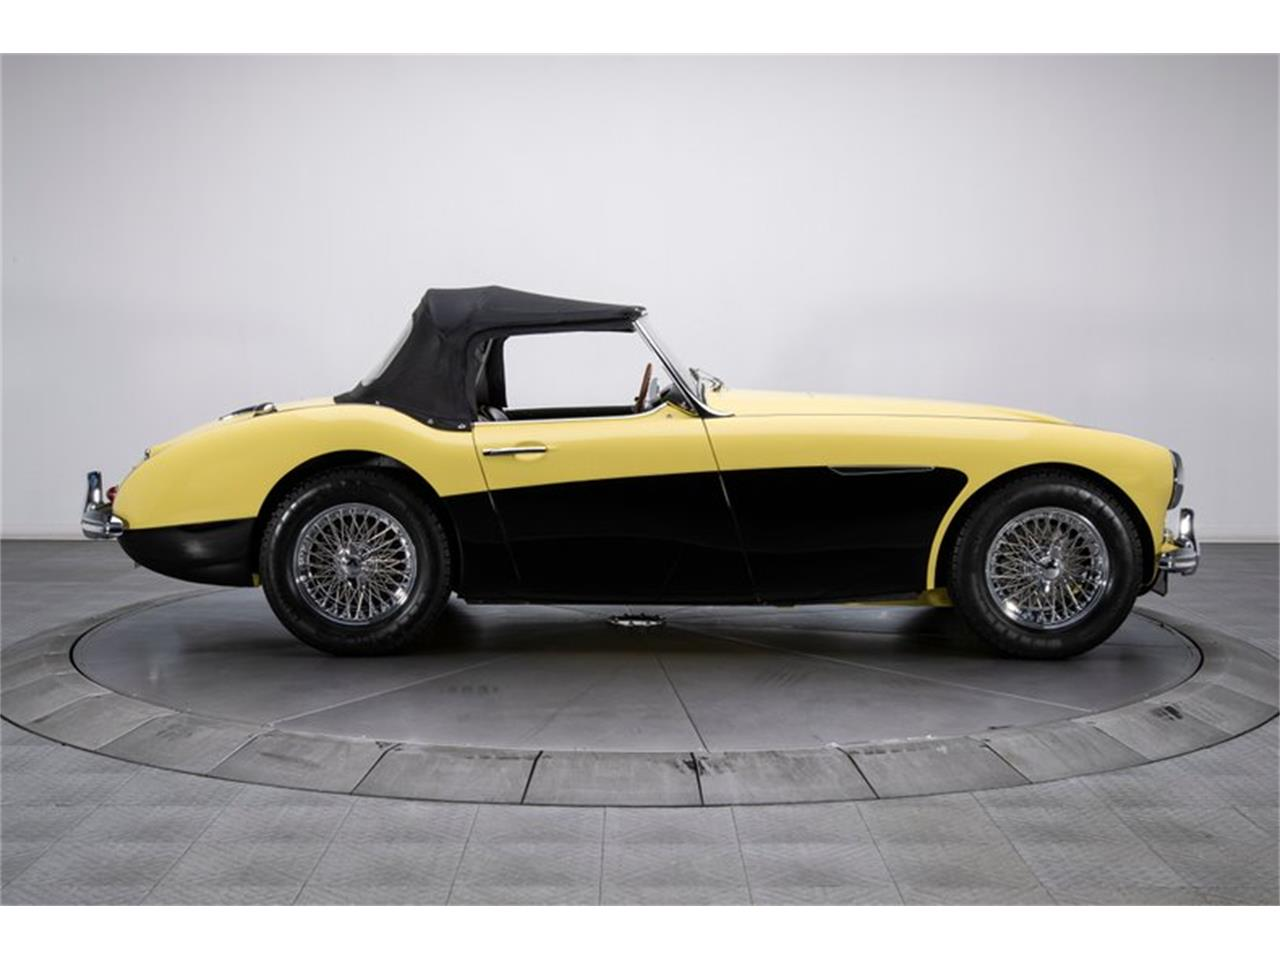 1959 Austin-Healey 3000 (CC-1376177) for sale in Charlotte, North Carolina